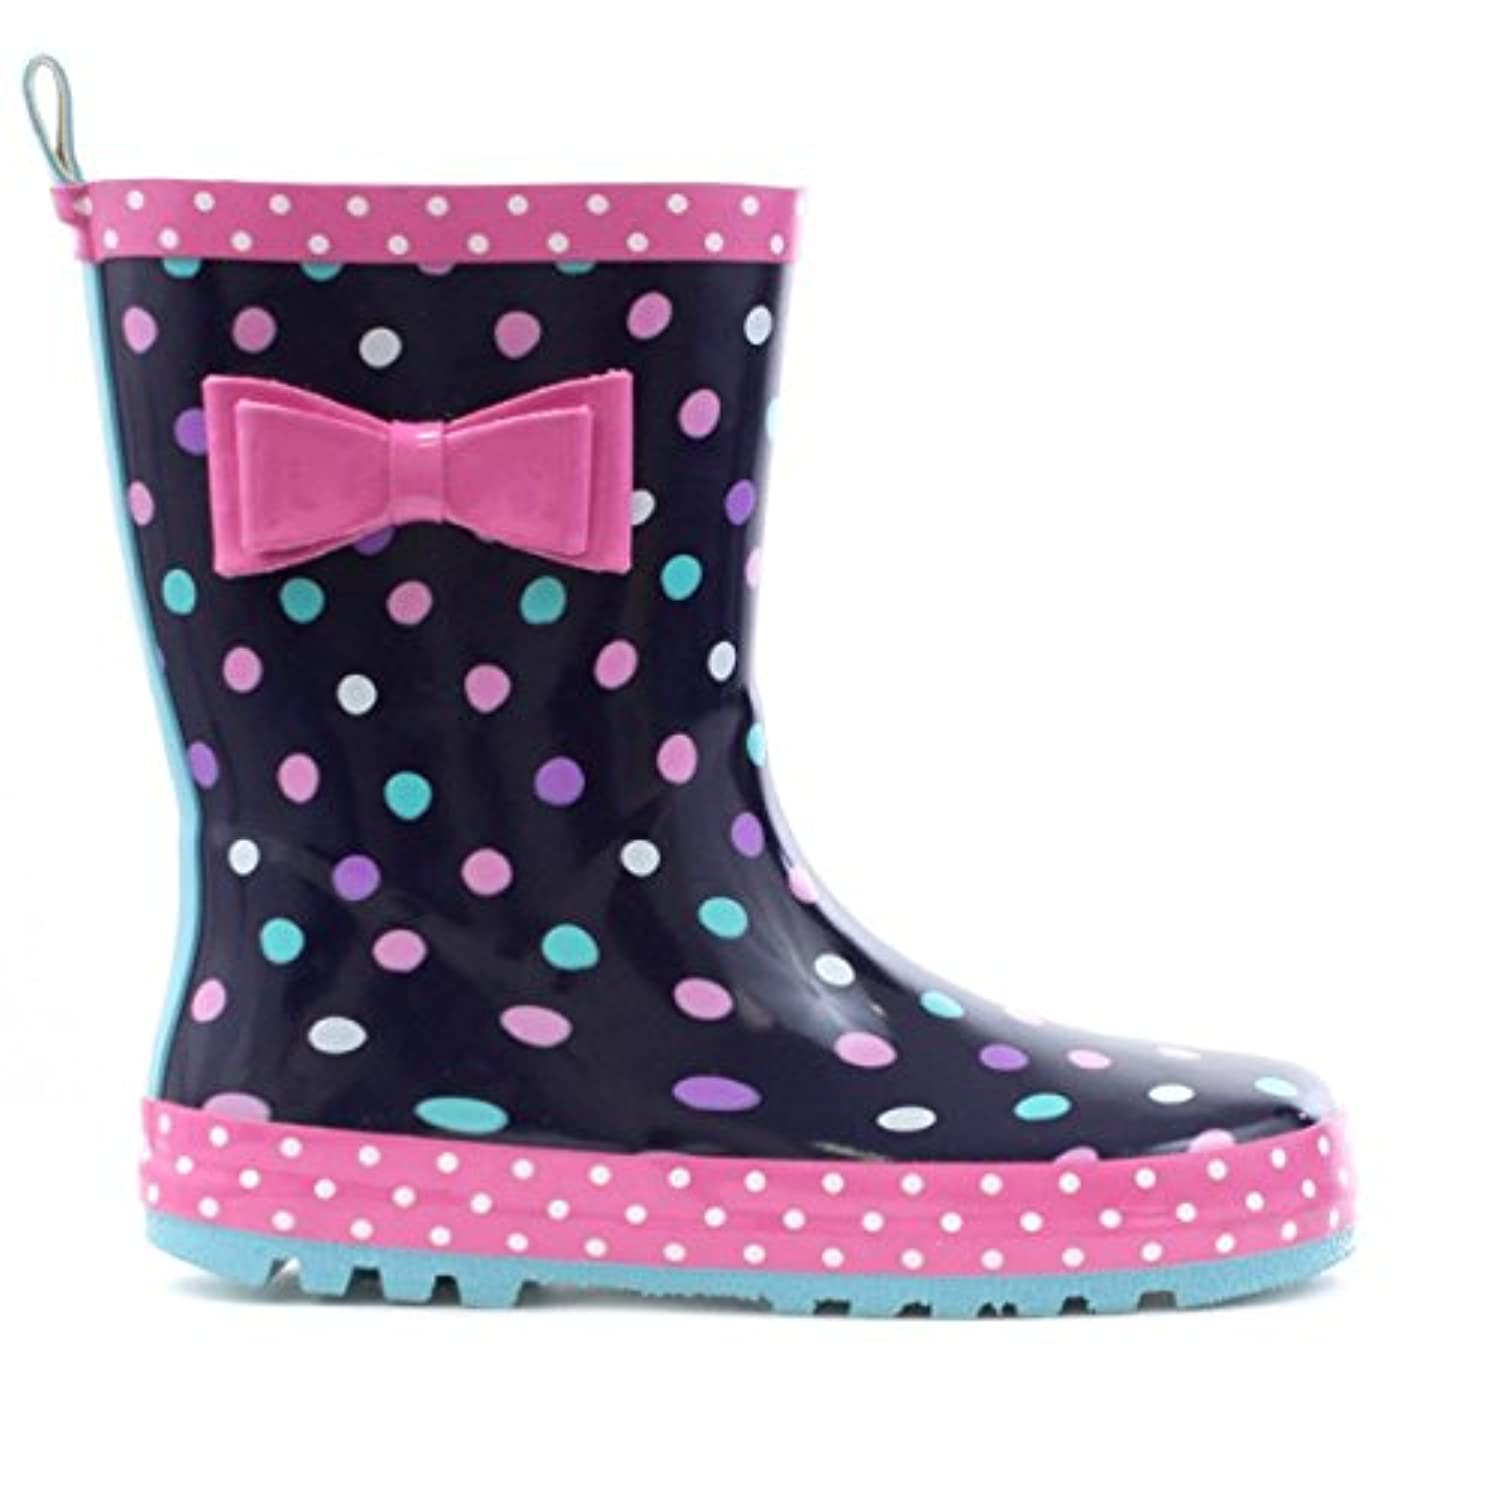 Wellygogs - Girls Wellygogs Navy Welly with Multi Spots - Size 1 - Blue